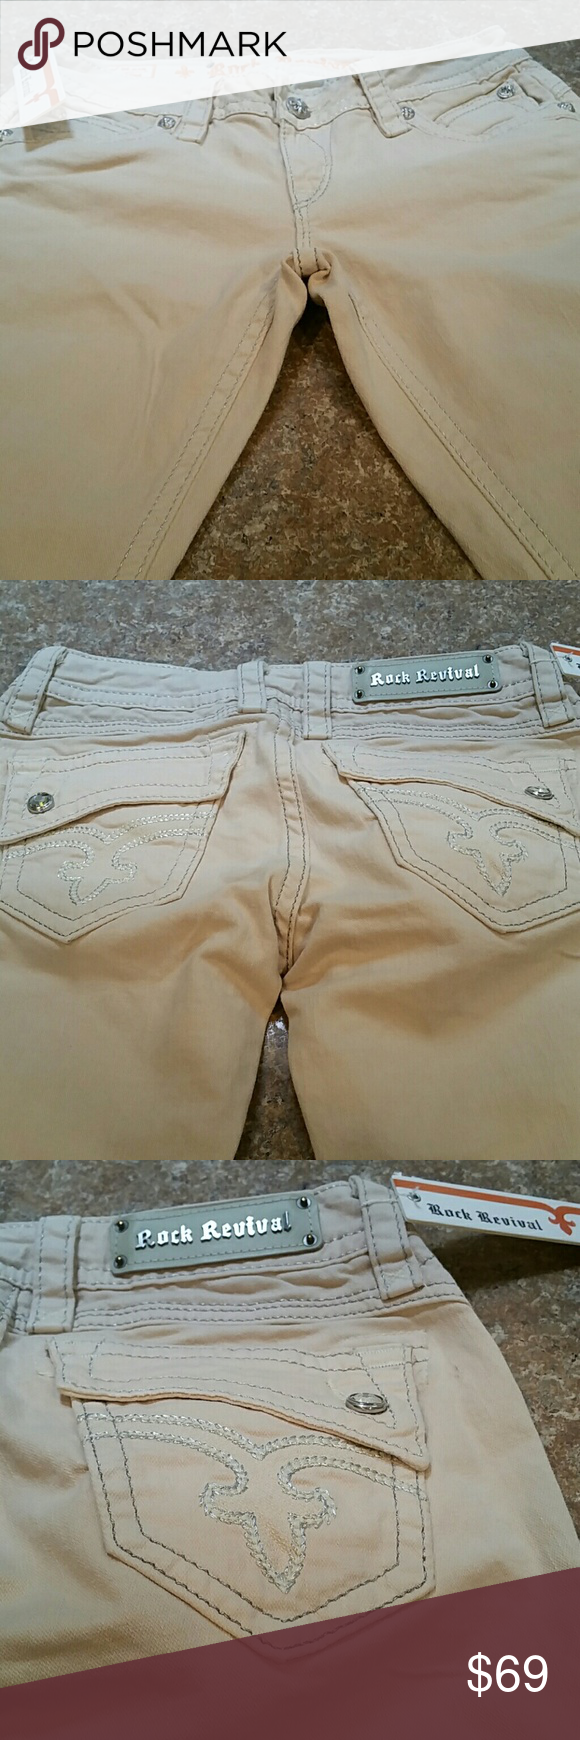 Rock Revivals JOHANNA FROM BUCKLES Straight tan color. Size 28 inseam 32.  DISTRESSED A LITTLE ON HEM LINE. NWOT Buckles Miss Me Pants Straight Leg